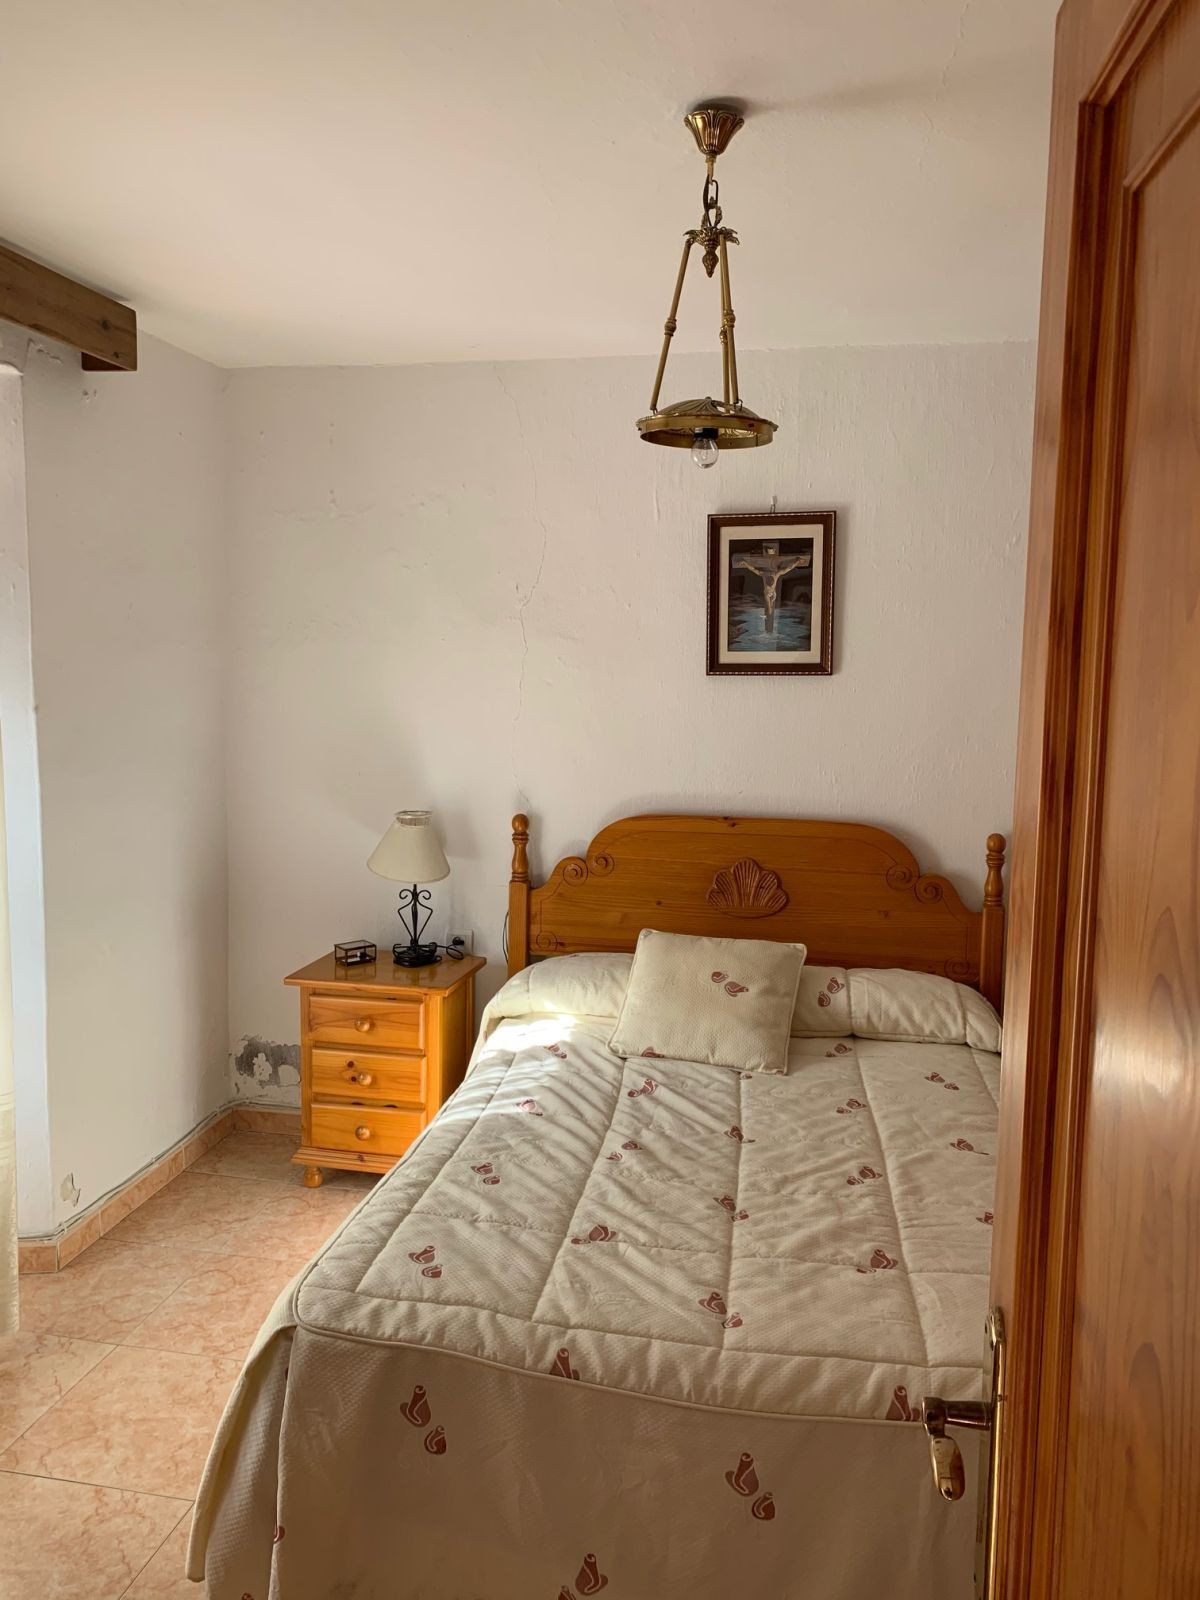 R3597926   Townhouse in Estepona – € 160,000 – 3 beds, 1 baths